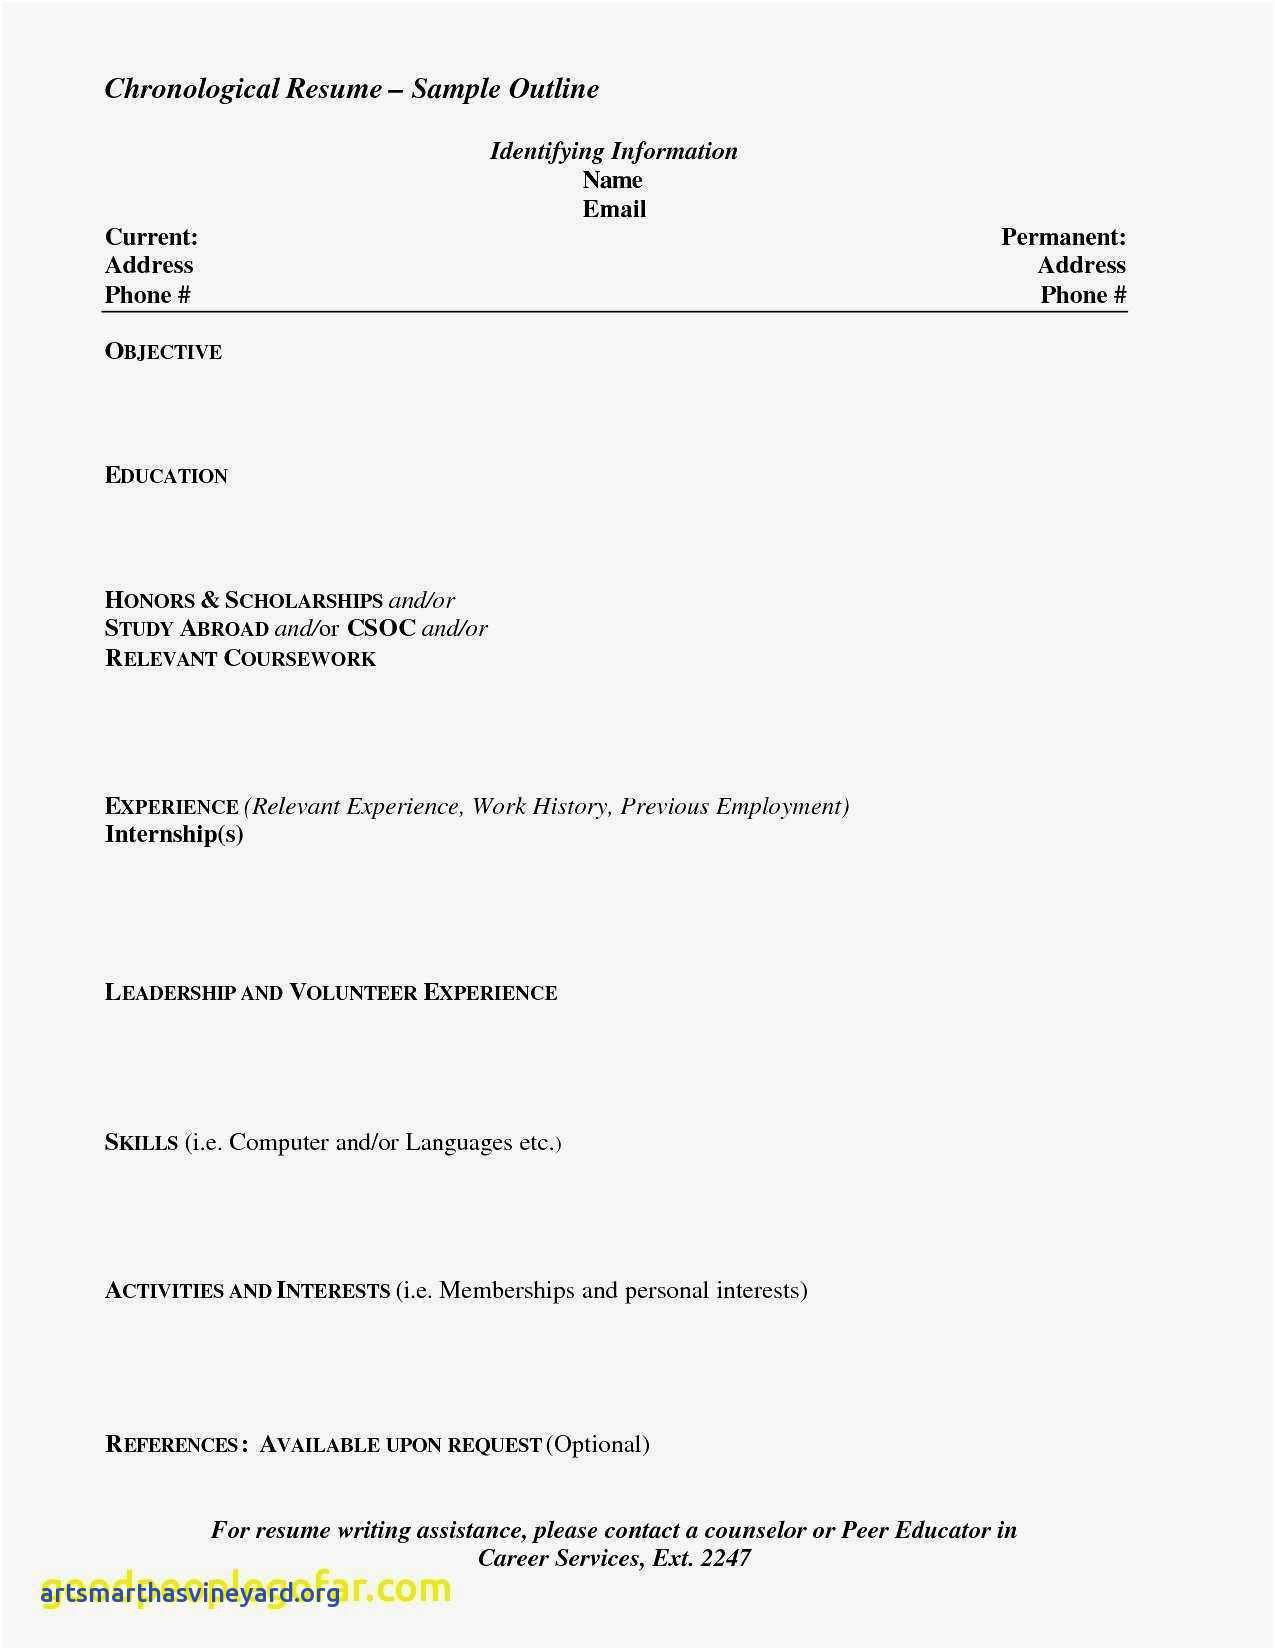 Academic Resume Template - Resume Templates High School Students No Experience Simple Unique